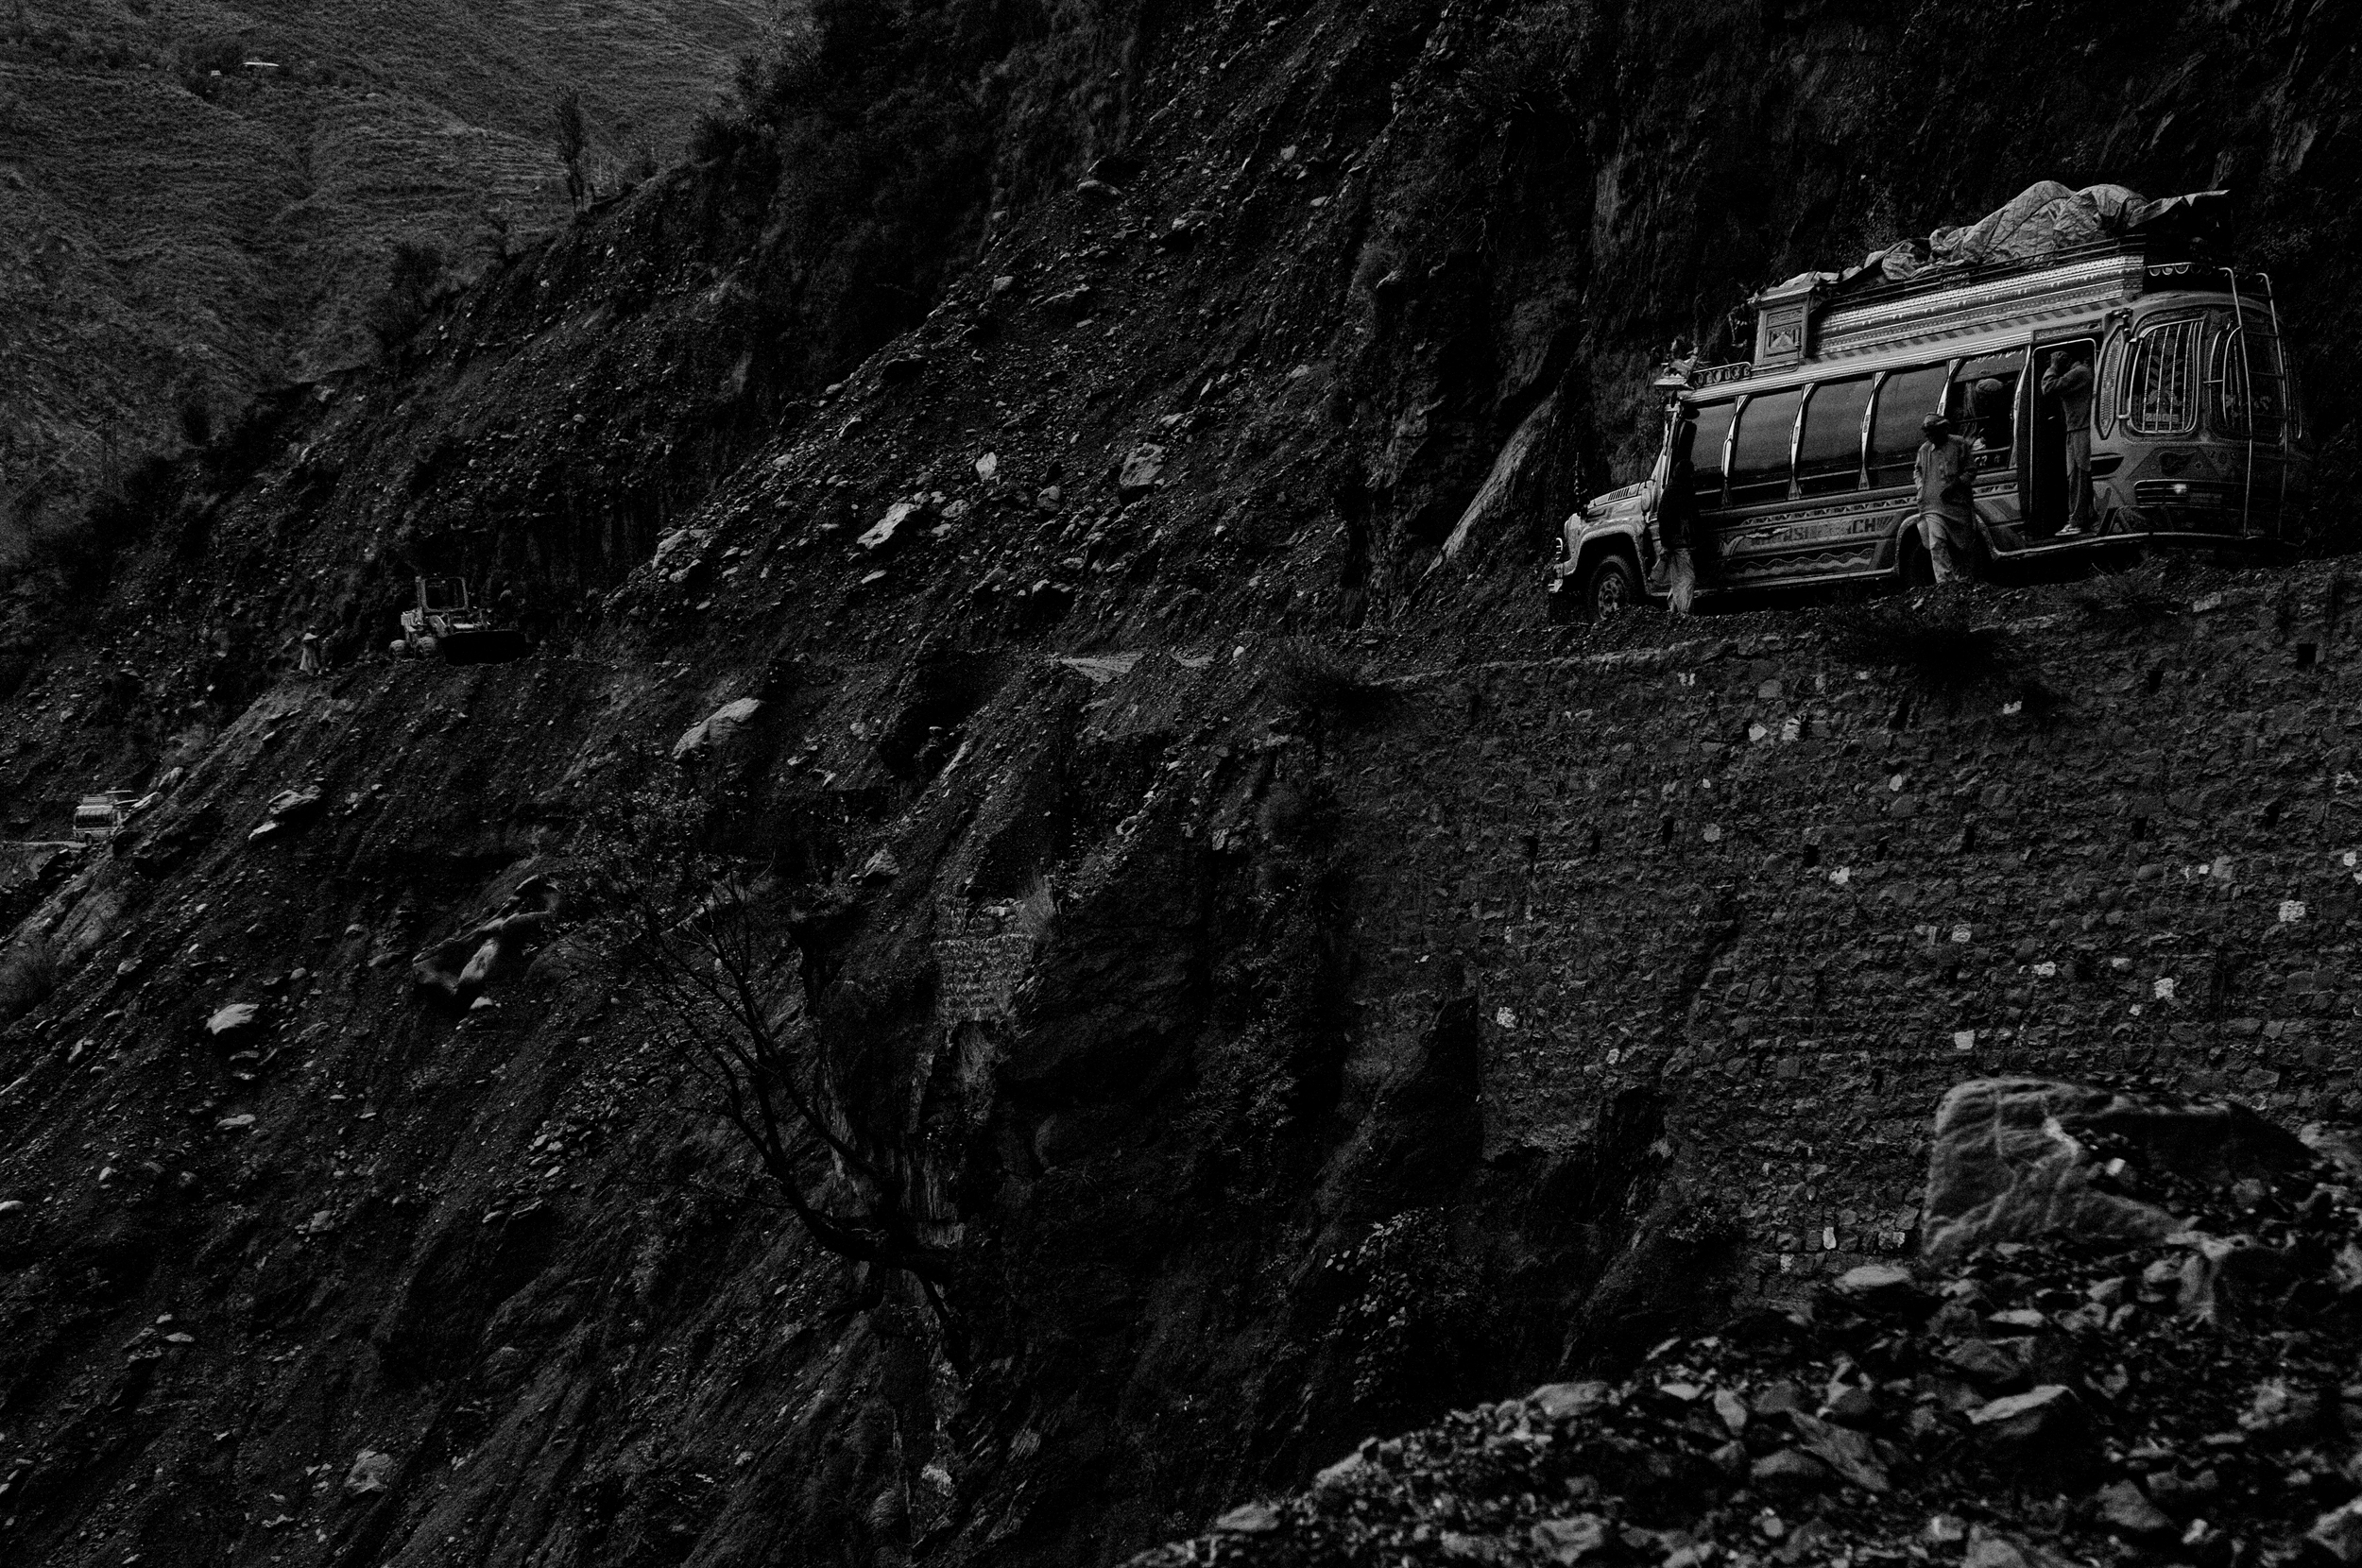 A passenger bus struggles to make the destroyed roads up the mountain after the roads were destroyed near Balakot, NWFP, Pakistan, November 8, 2005. (Photo / Mark Pearson) The massive October earthquake in Kashmir affected one of the highest and most remote places on earth. Difficult terrain slowed the relief effort and the largest scale humanitarian air operations since the Berlin blockade began.